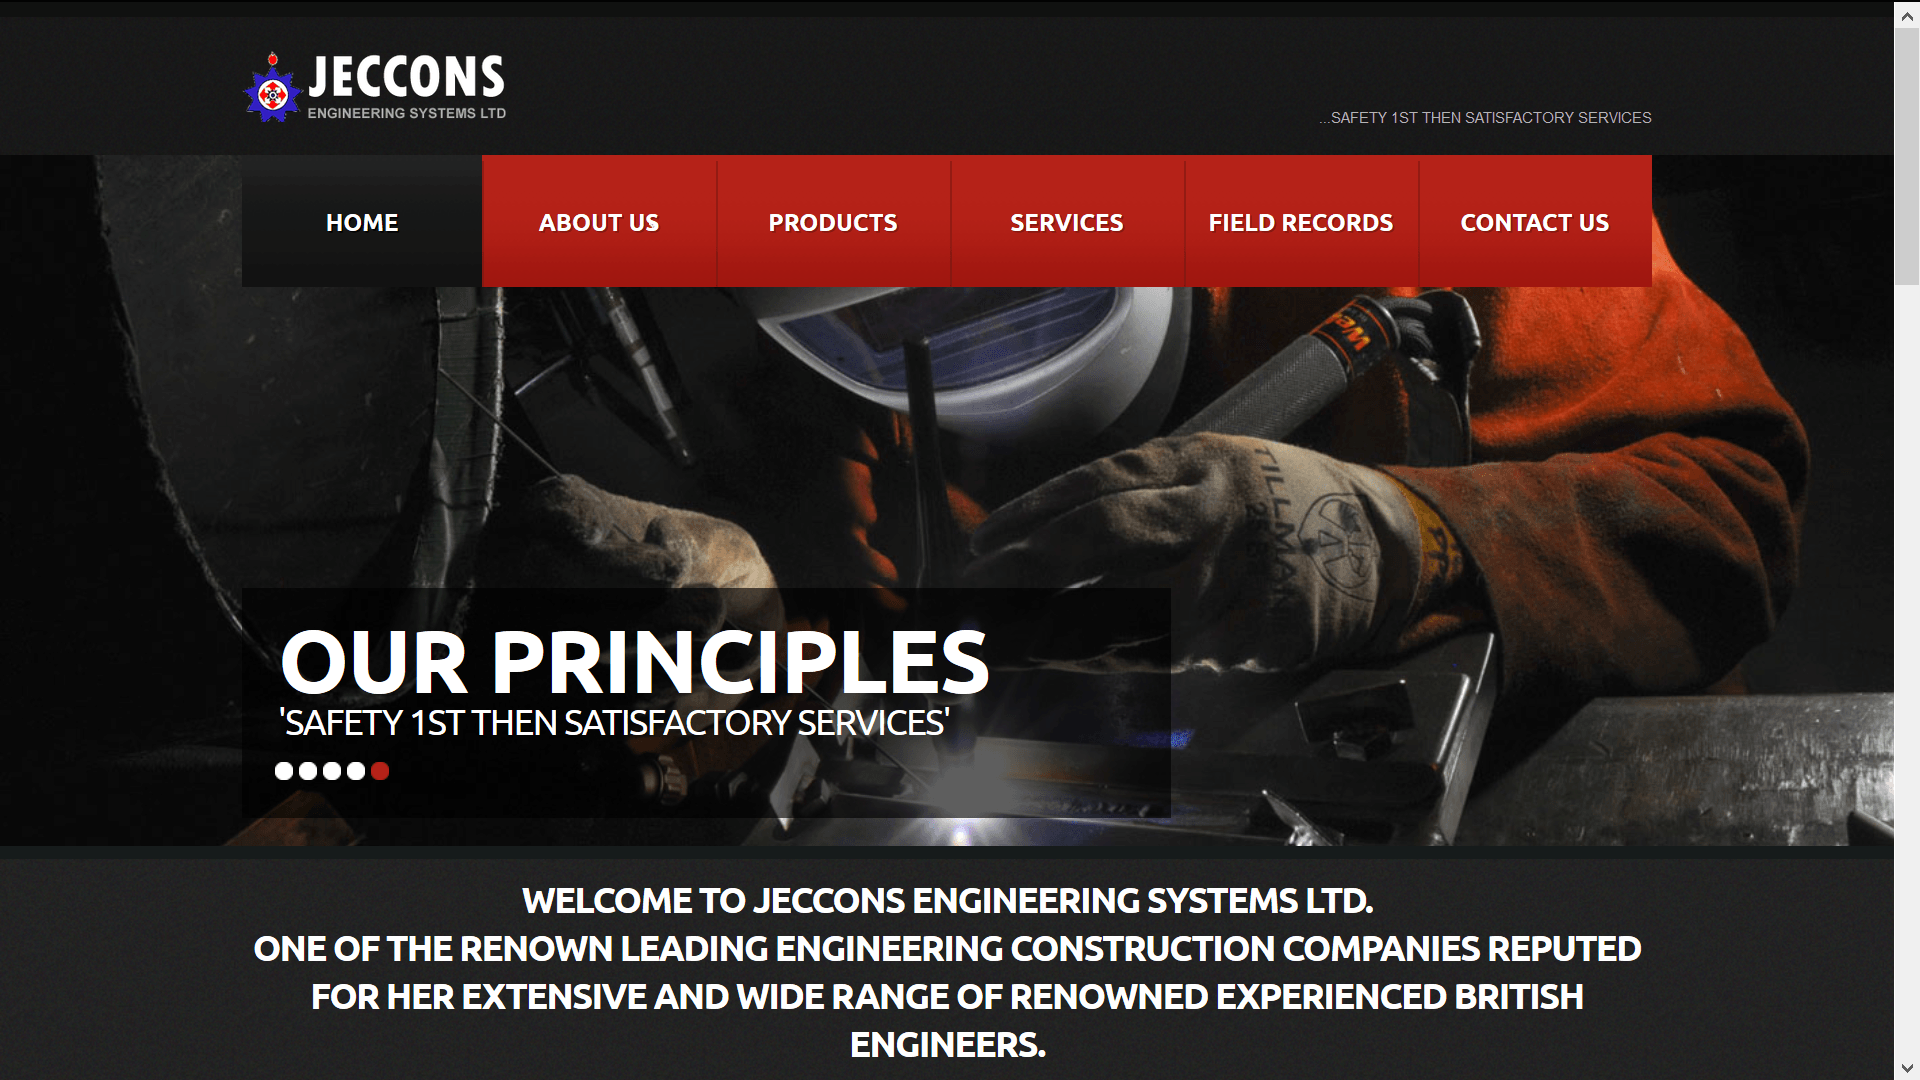 Jeccons Engineering Systems Ltd